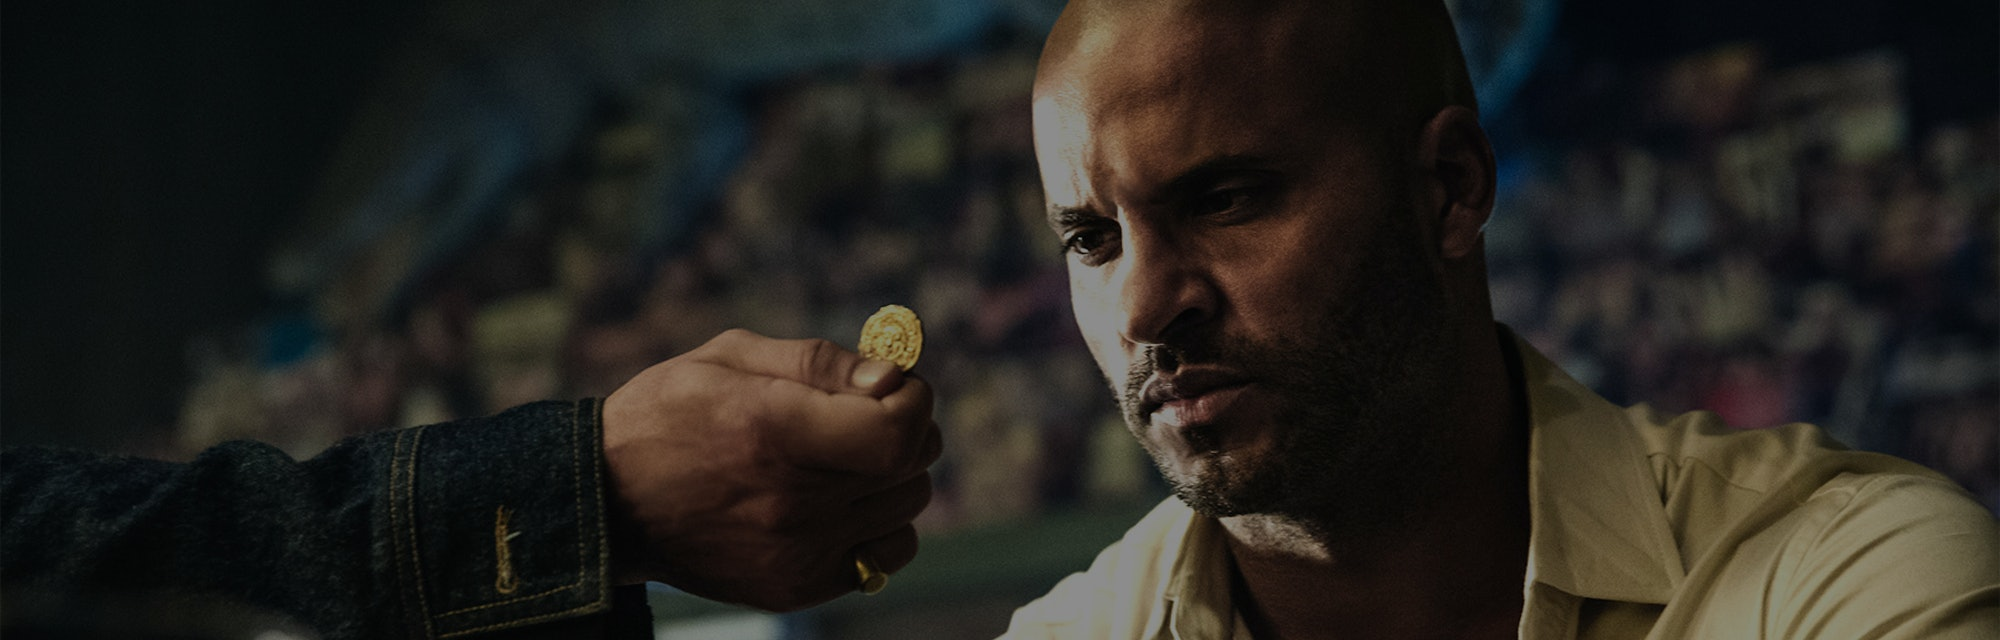 American Gods Star Ricky Whittle as Shadow Moon